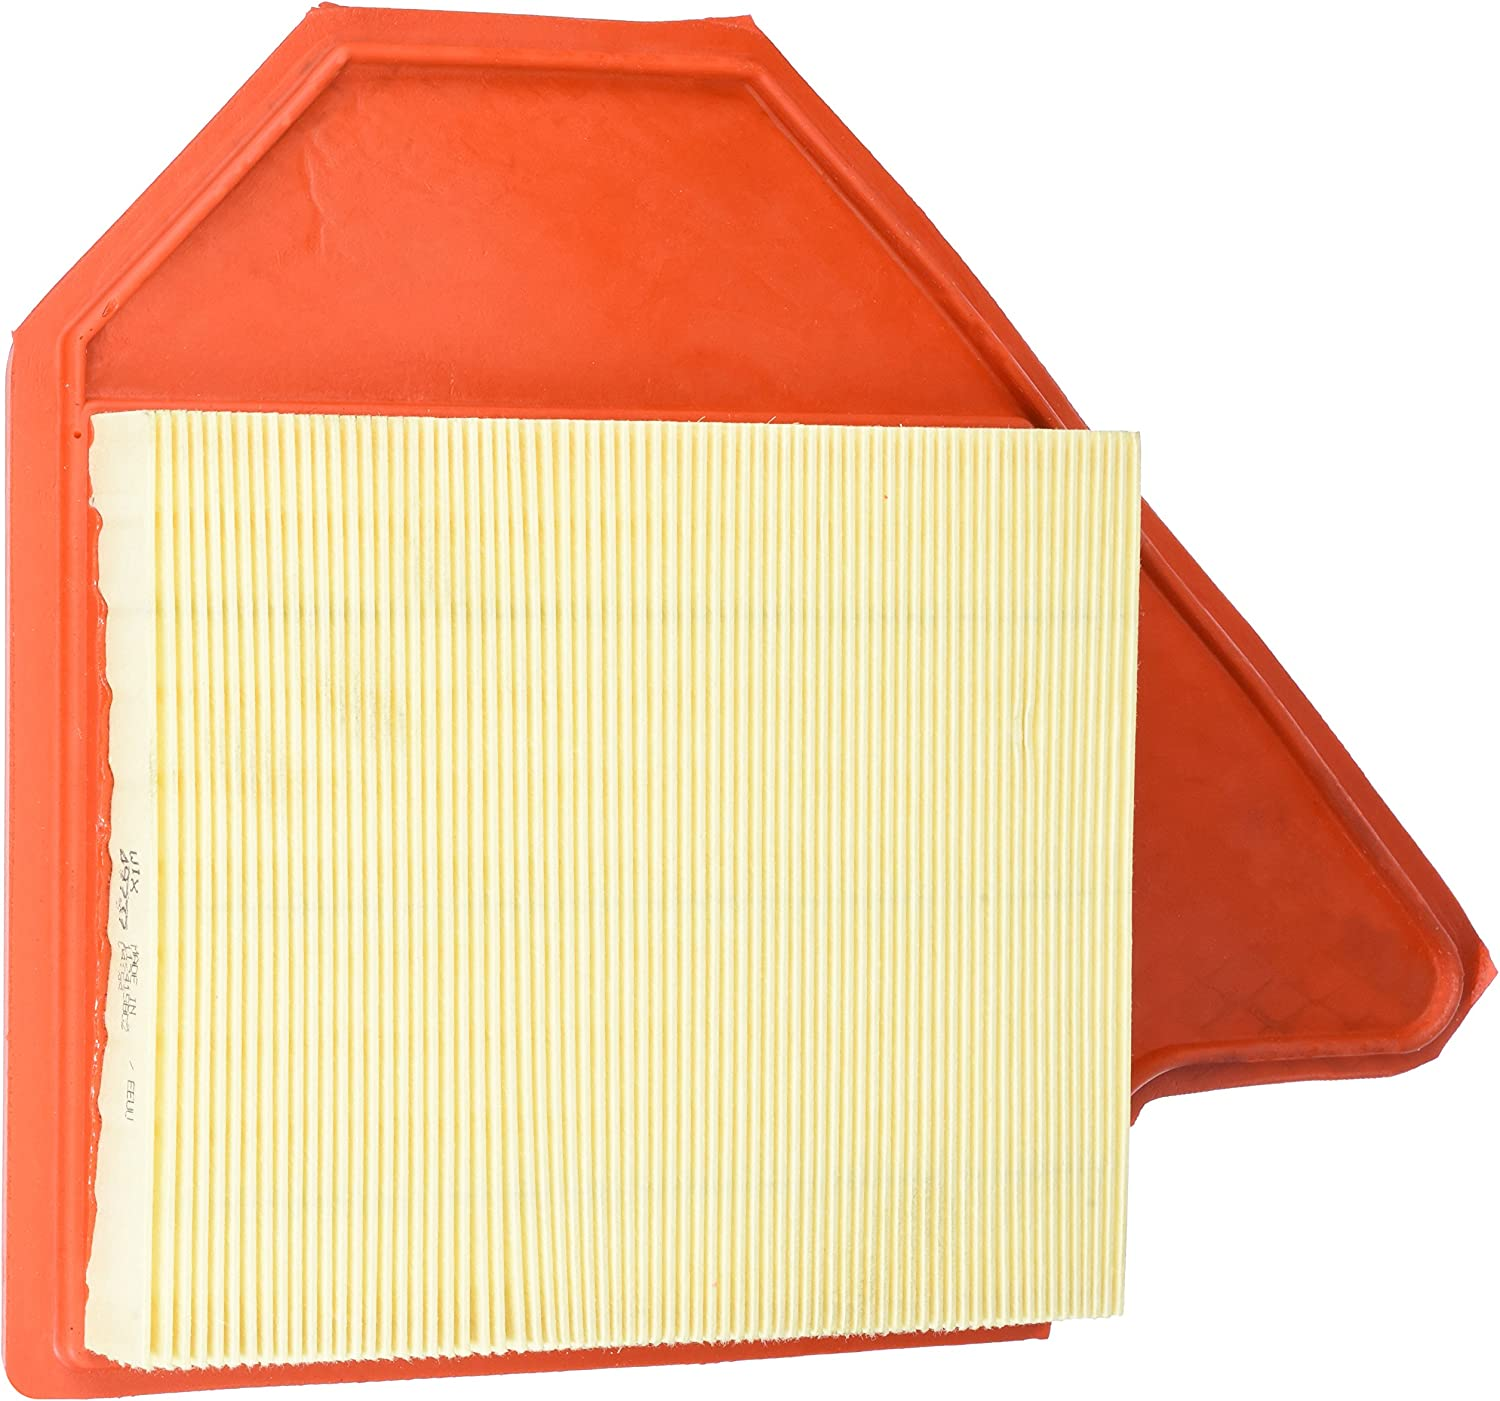 WIX 49737 Heavy Duty Air Filter